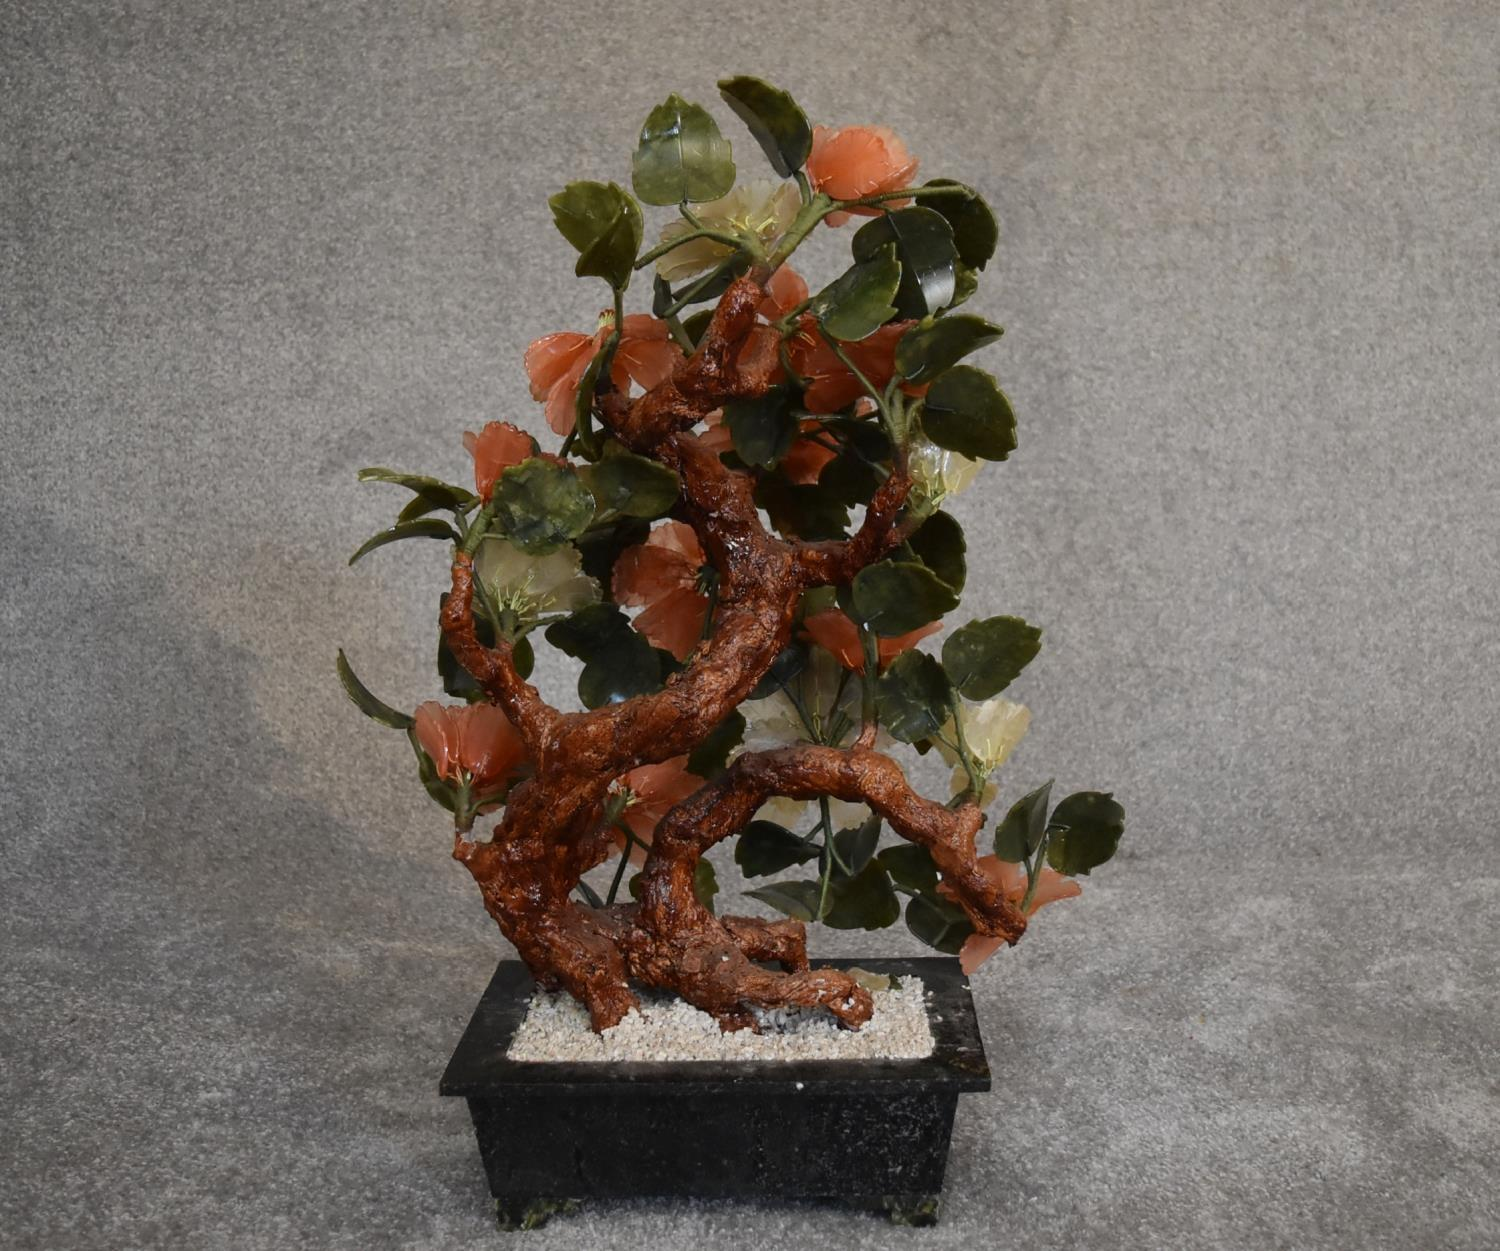 Lot 18 - A Chinese carved jade and agate ornamental blossom tree with carved petals and leaves, in